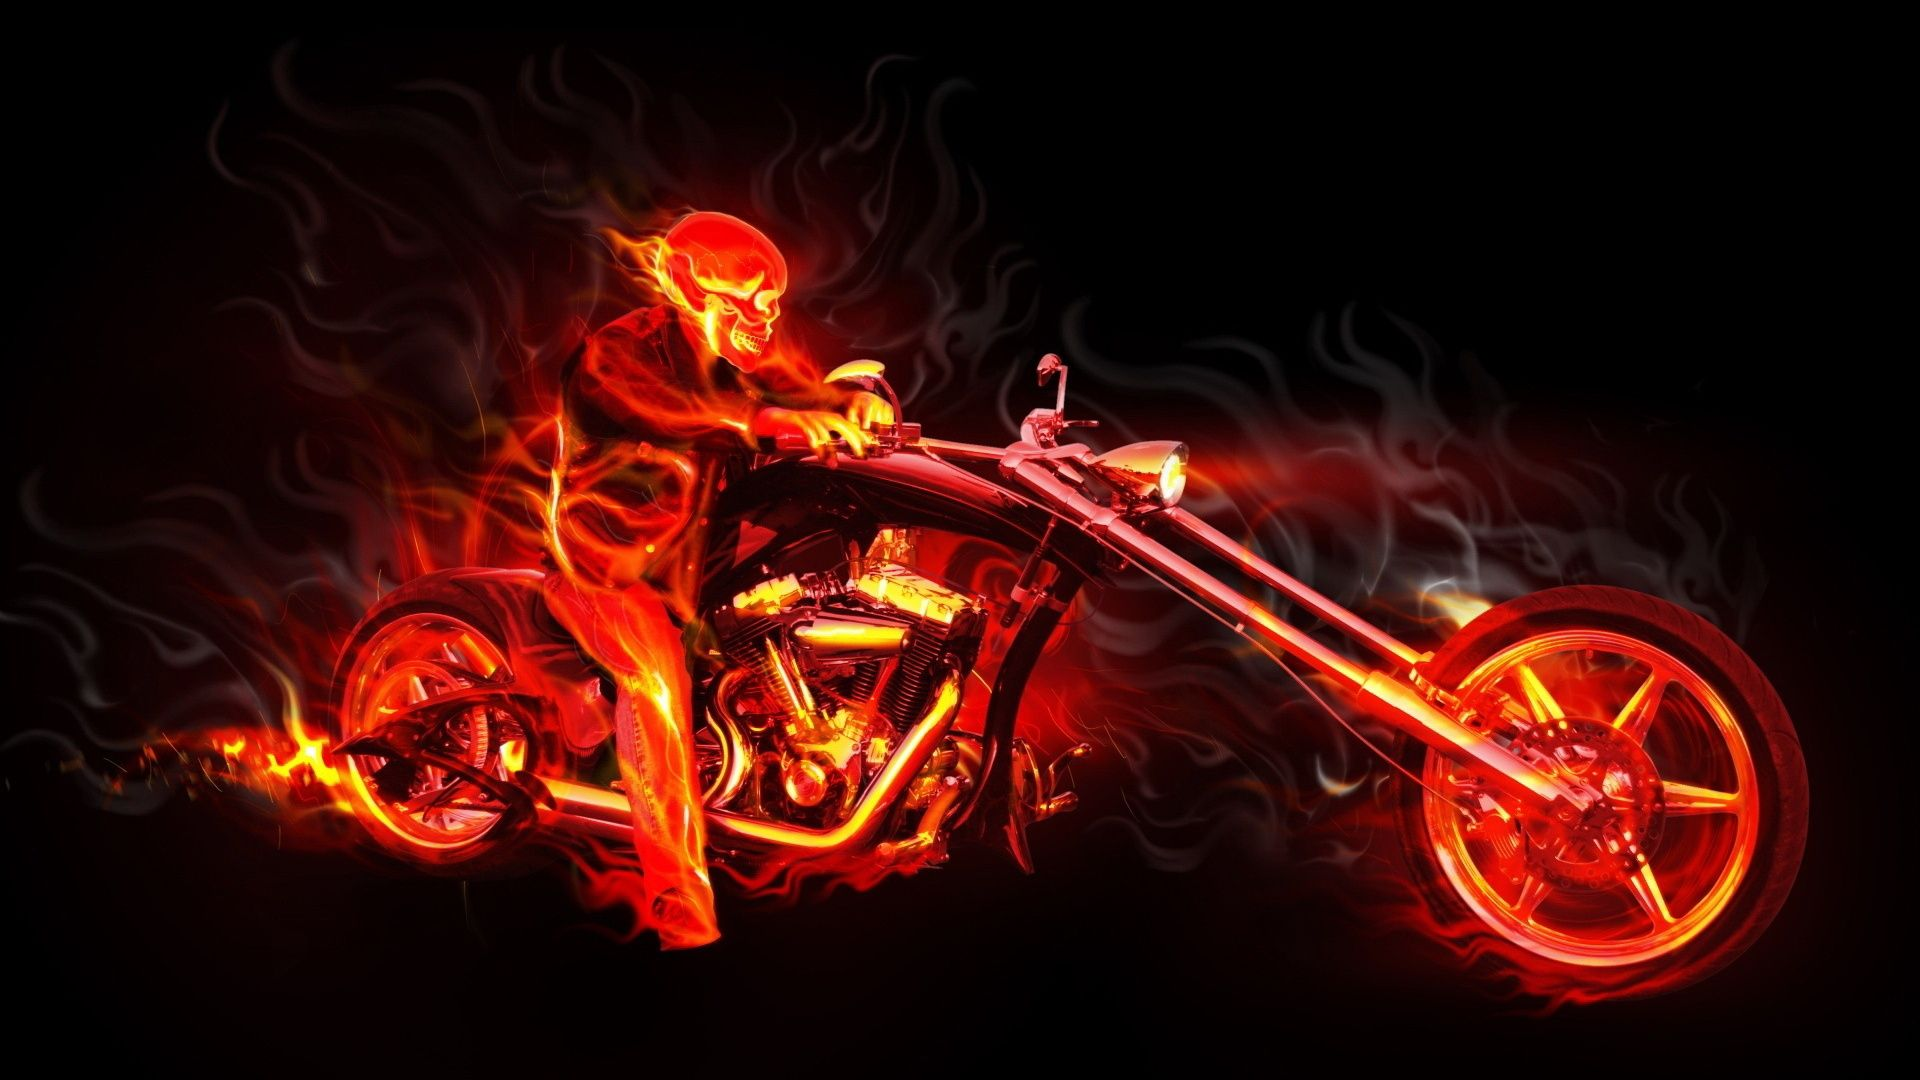 ghost rider wallpapers download group 1600×1200 ghost rider hd